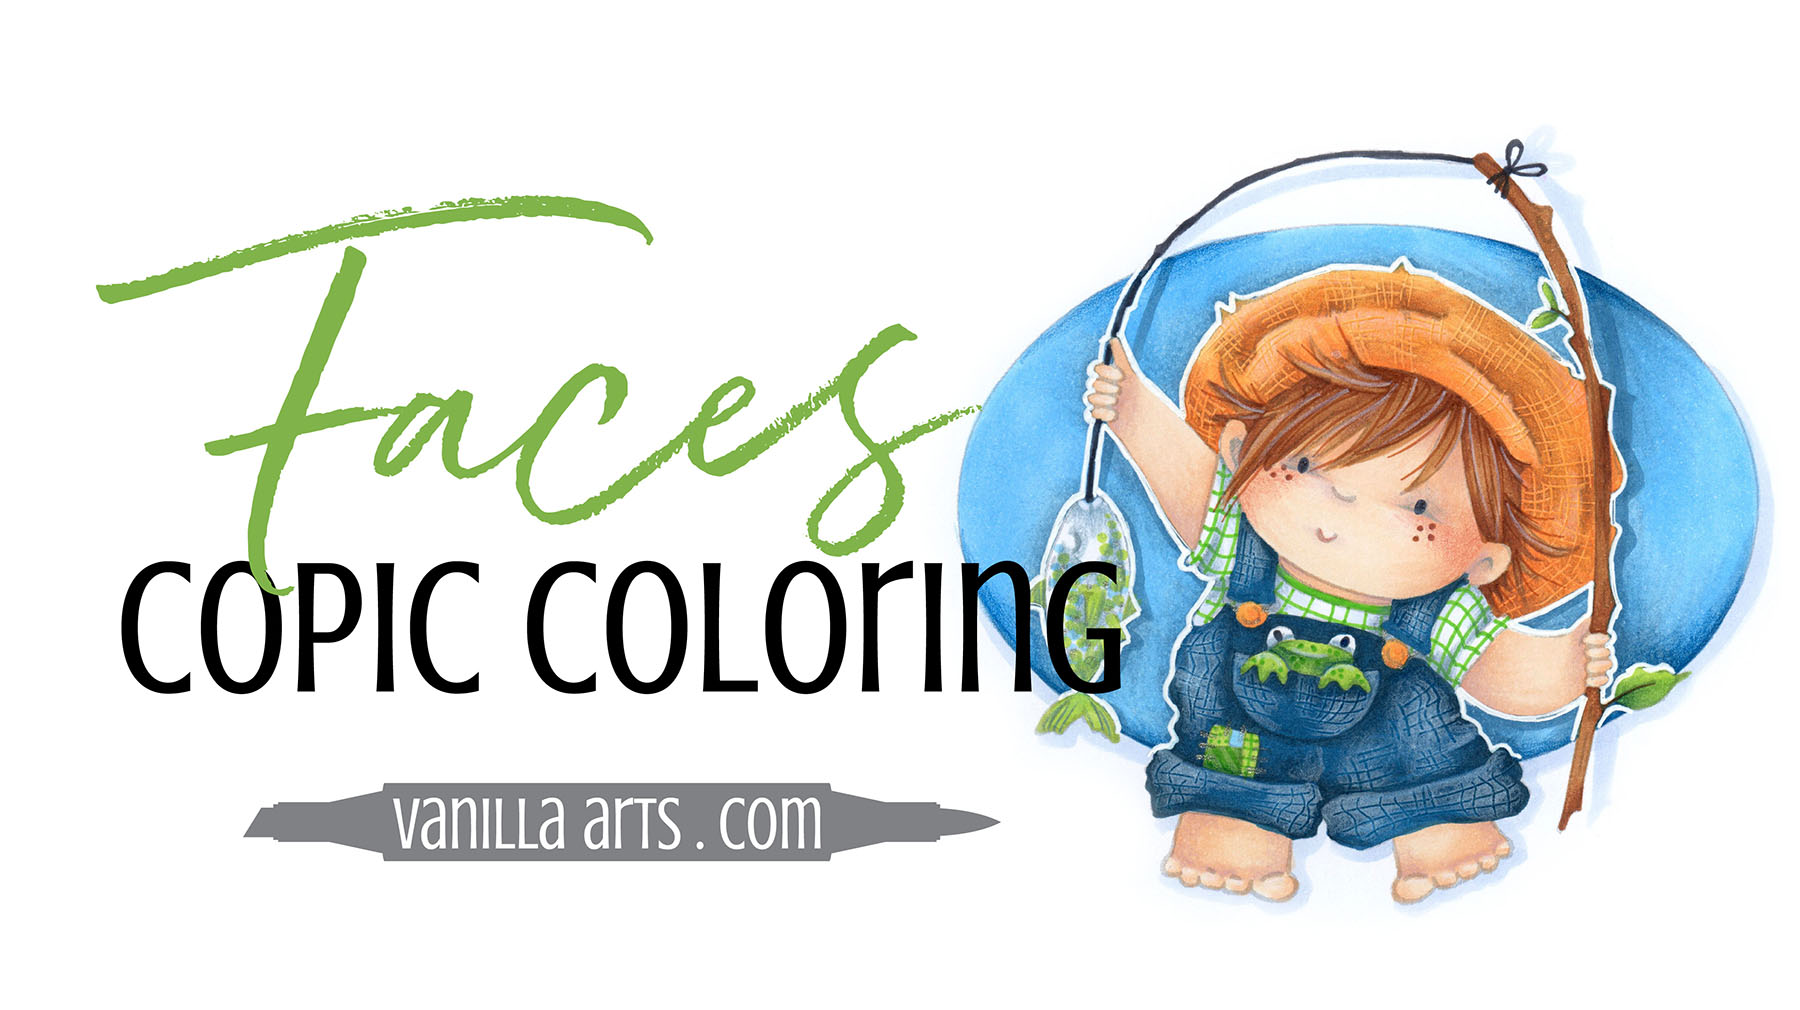 Learn how to color expressive faces with Amy's simple beginner Copic Marker technique. Free demonstration video. | VanillaArts.com | #copic #coloredpencil #howtocolor